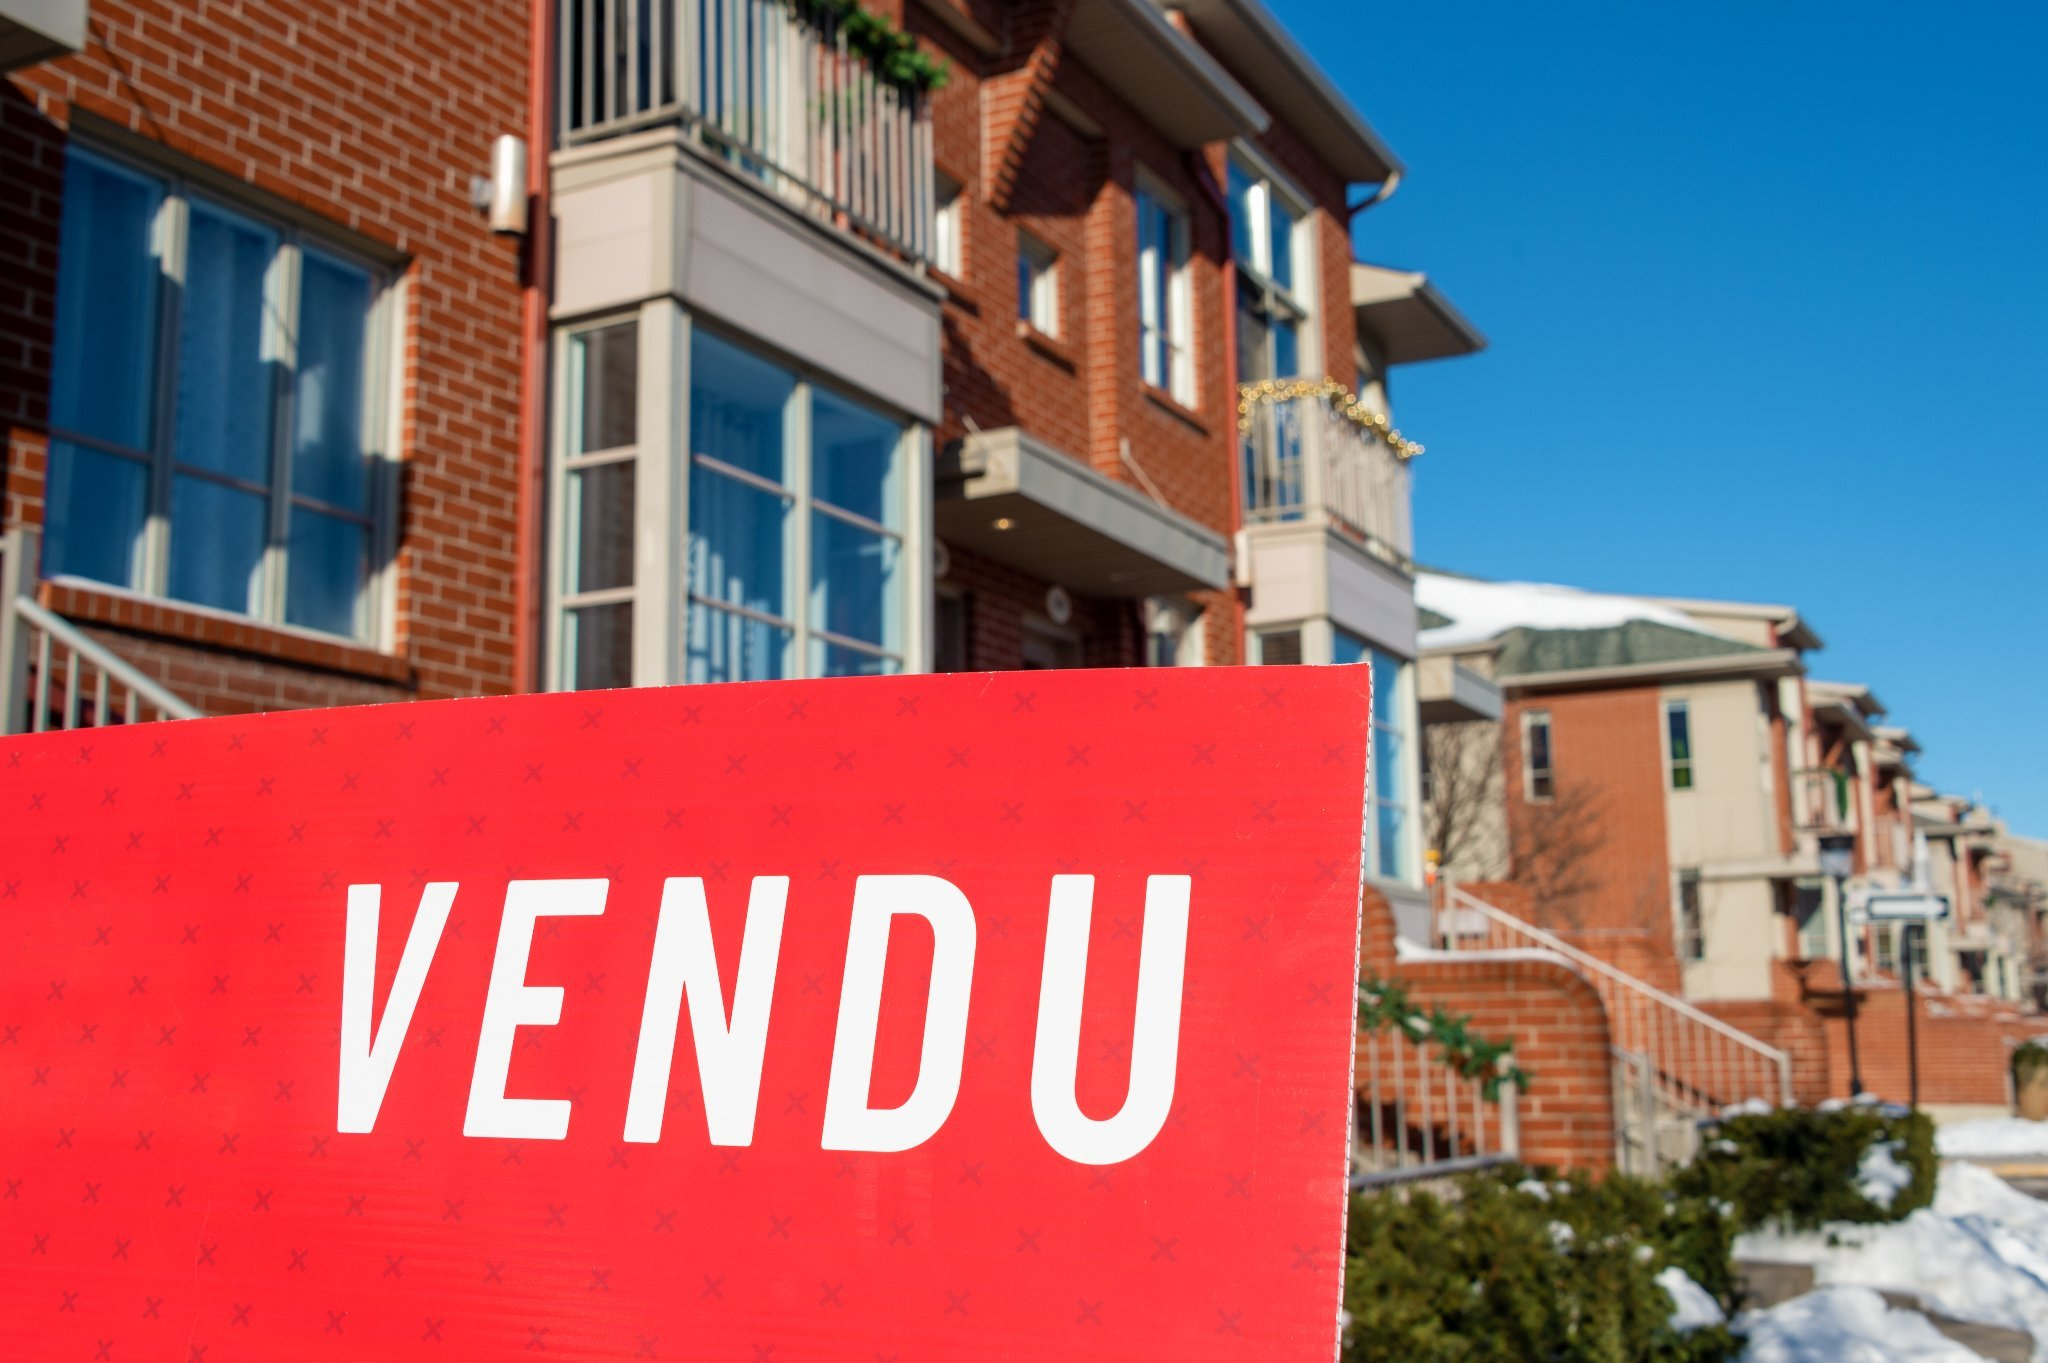 A City In Quebec Is One Of The Most-Searched Canadian Cities For Buying A Home